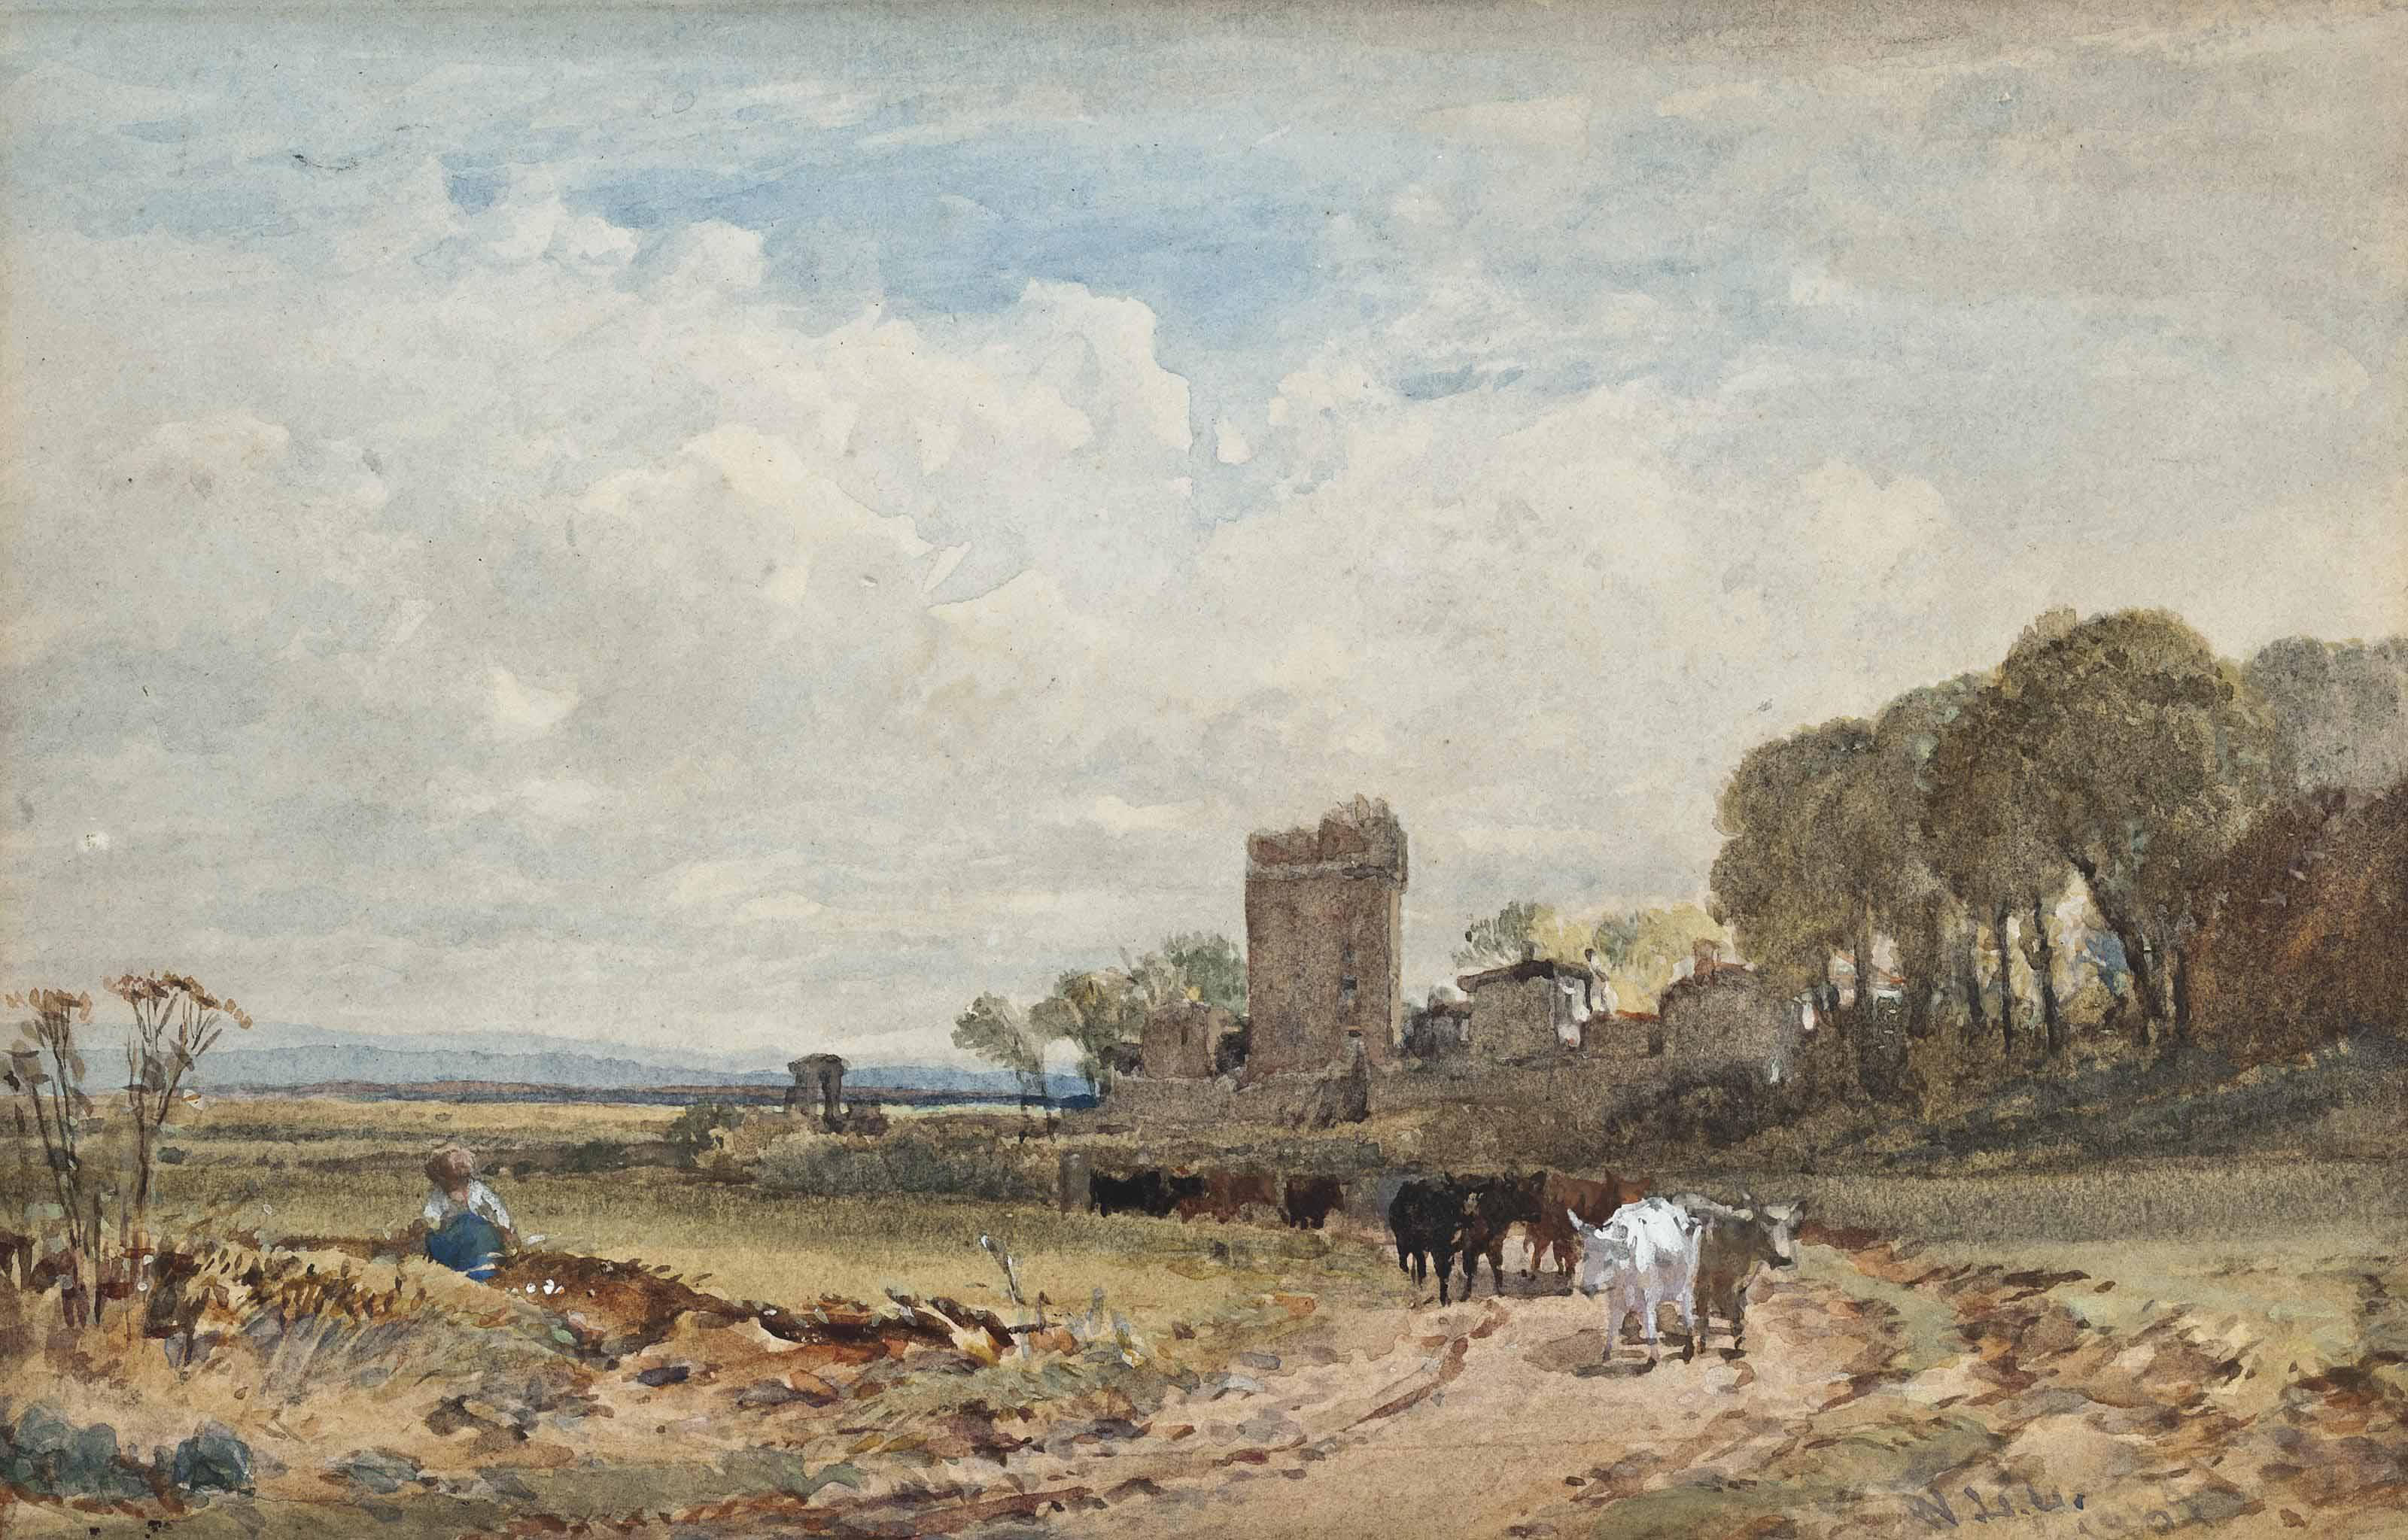 Cattle on a country track before a ruined tower (illustrated); A drover and cattle before a ruined castle at dusk; and Figures walking on a country lane before a tower